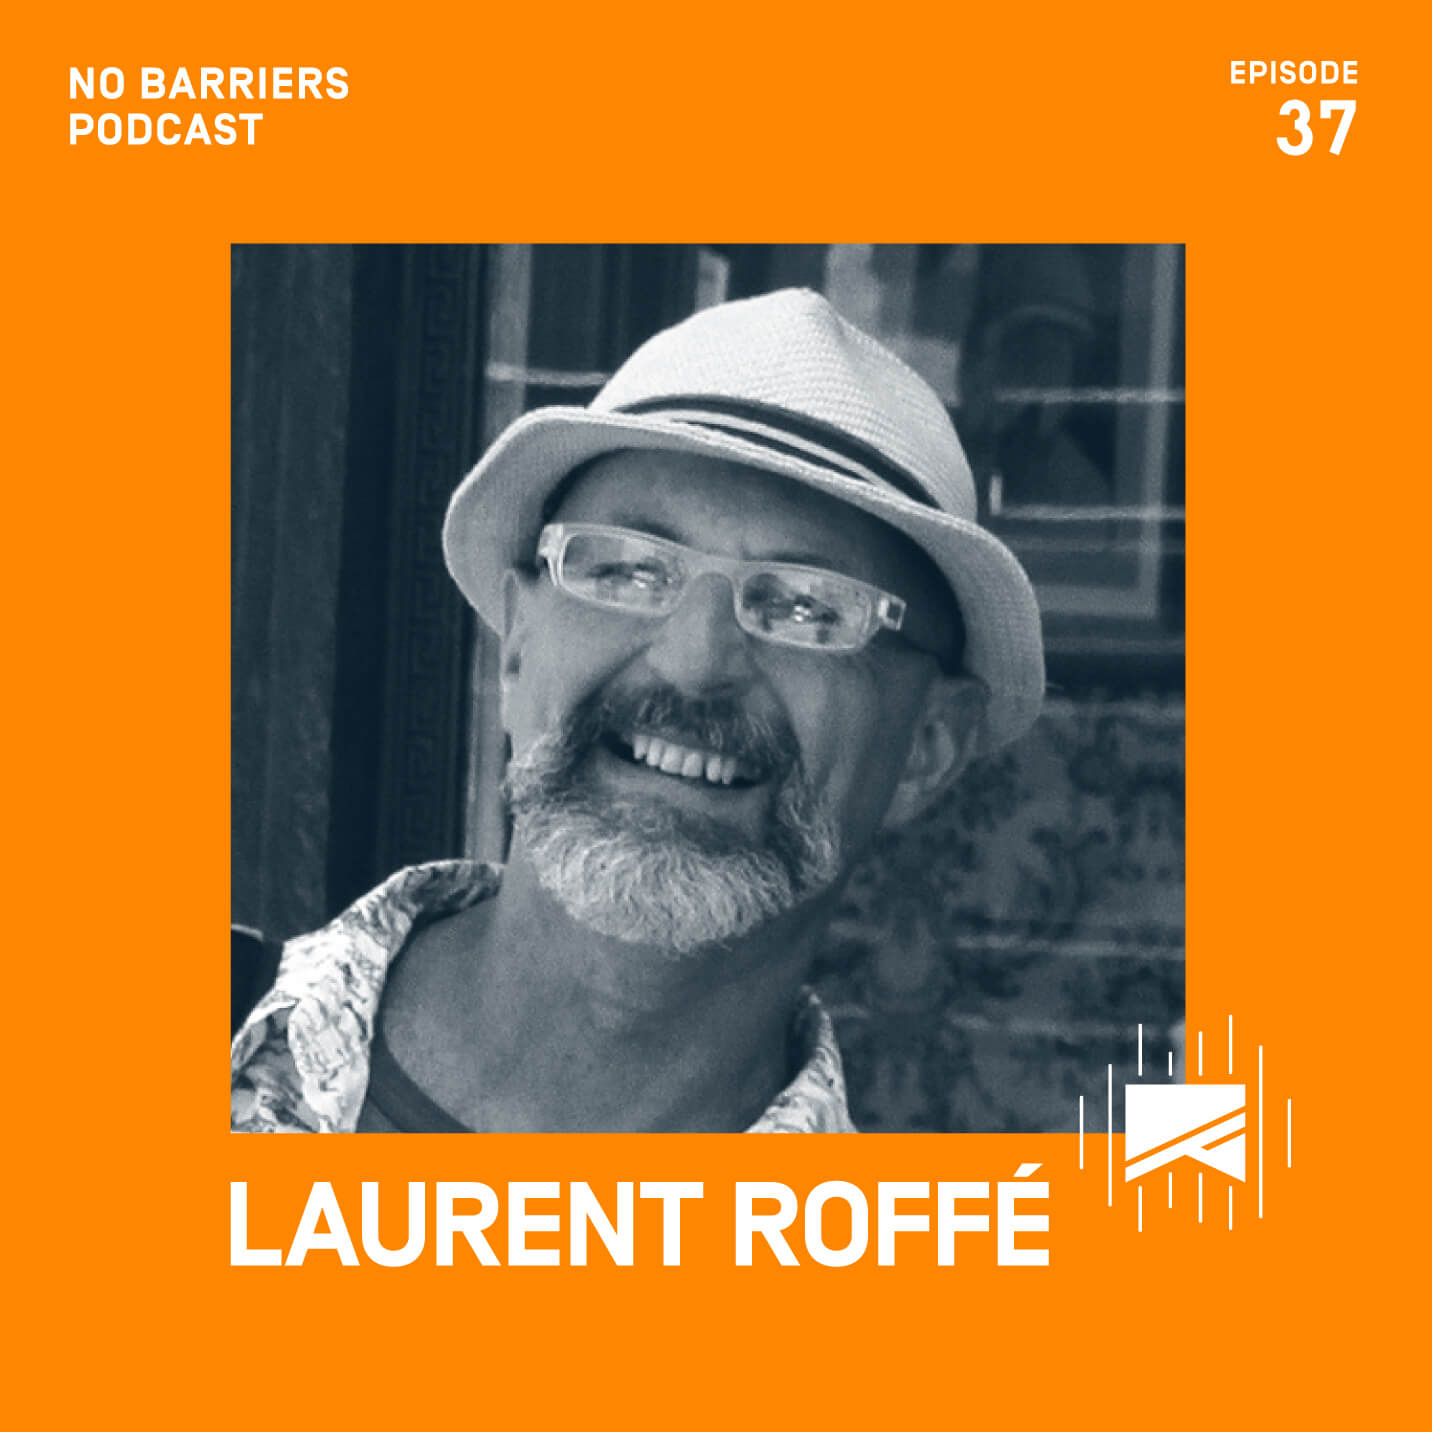 Interview with Laurent Roffe